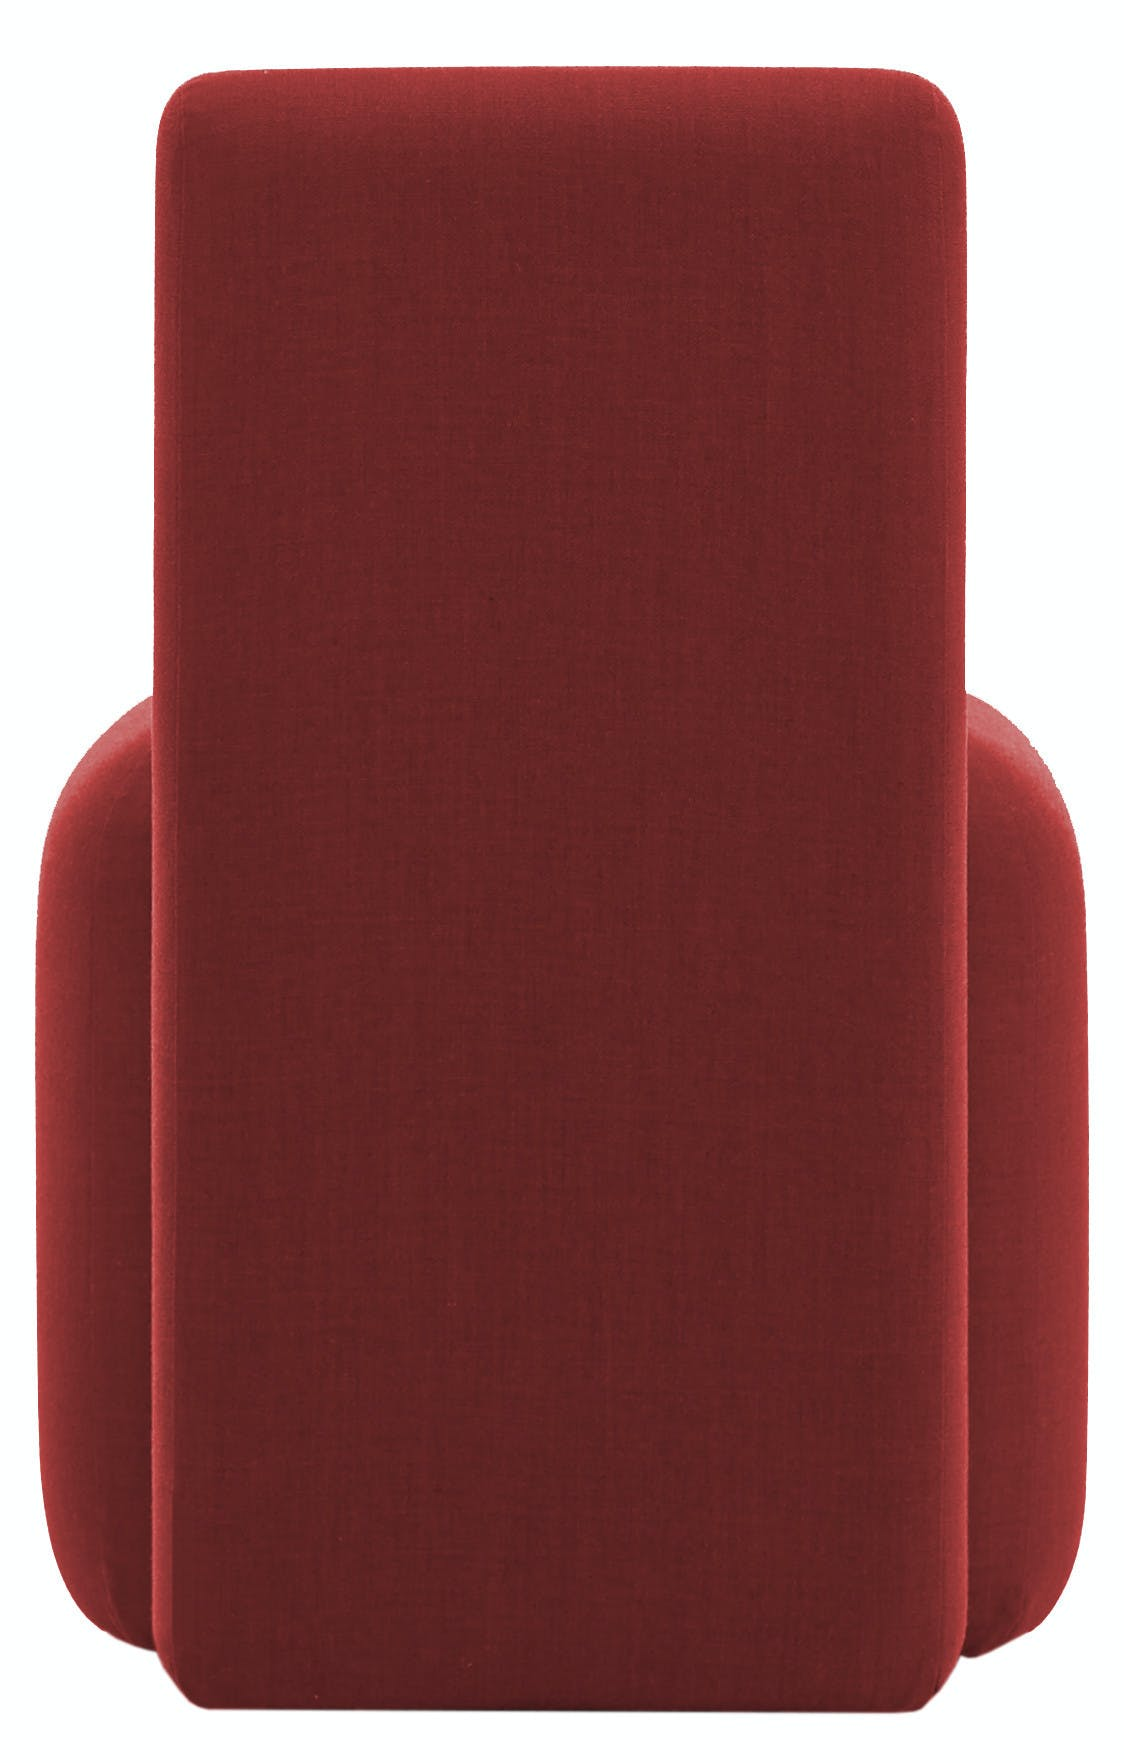 Viccarbe-red-back-season-chair-haute-living